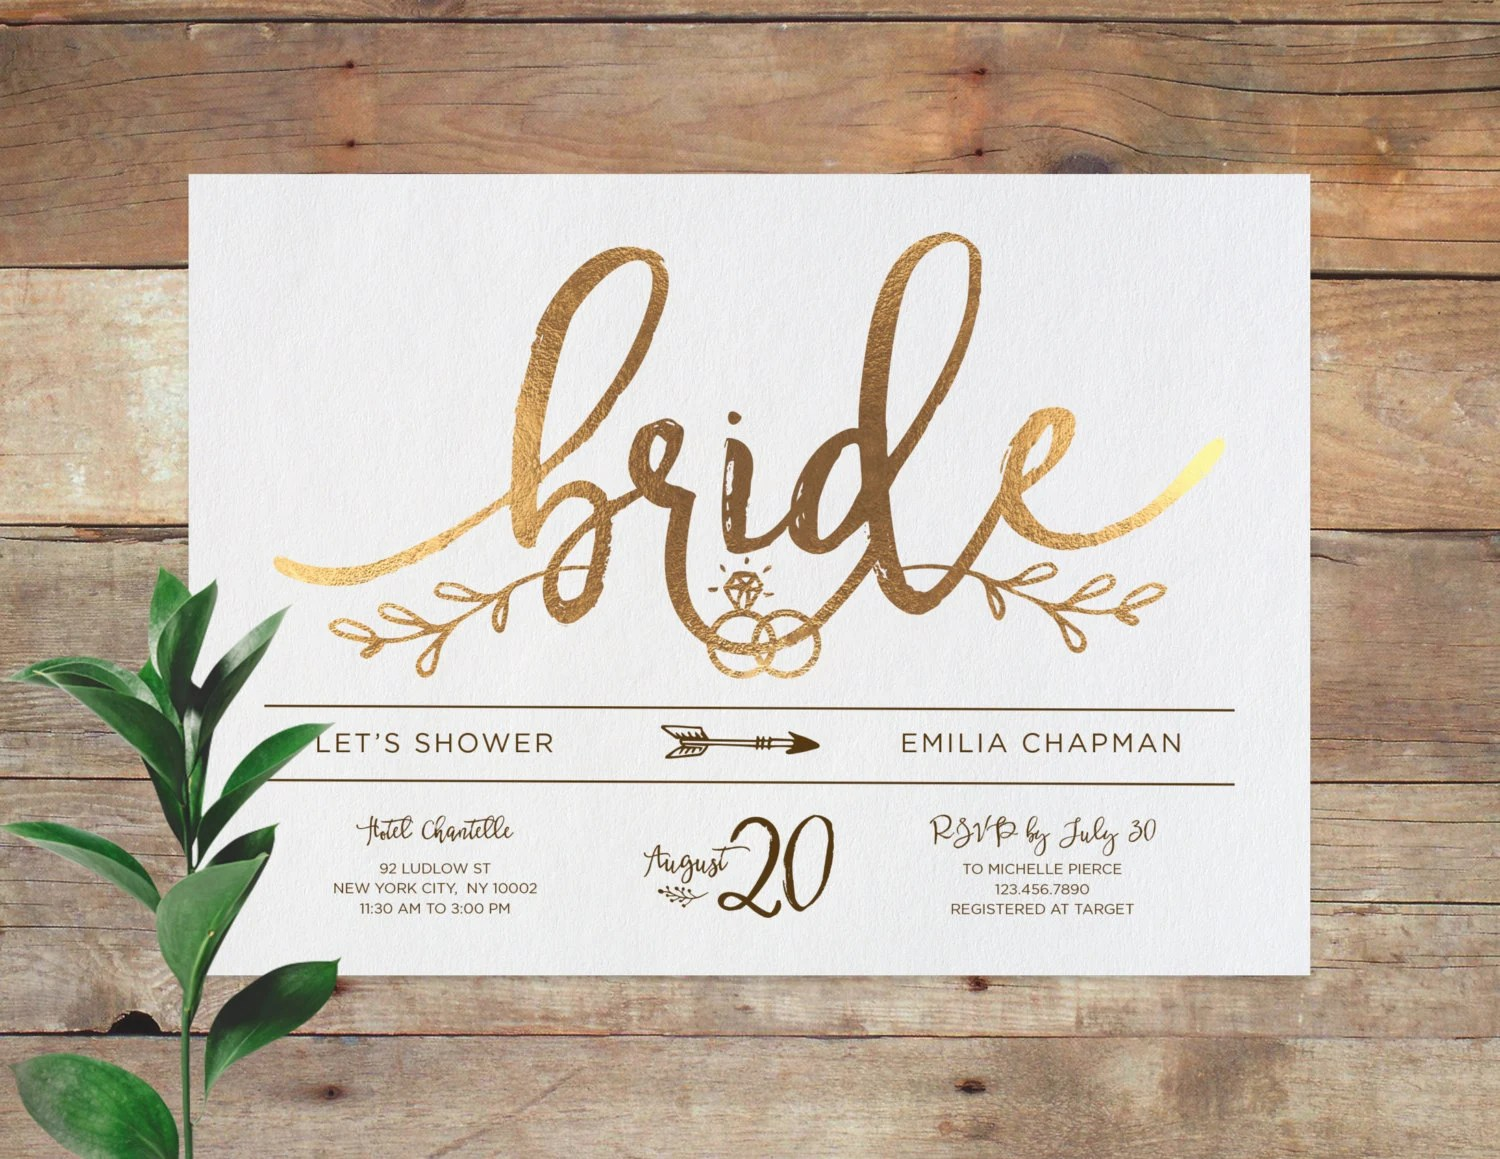 rose gold invitation rose gold wedding invitations Emilia Bridal Printable Bridal Shower Invitation Shower Invite Wedding Shower Invitation Calligraphy Gold Now available in Rose Gold